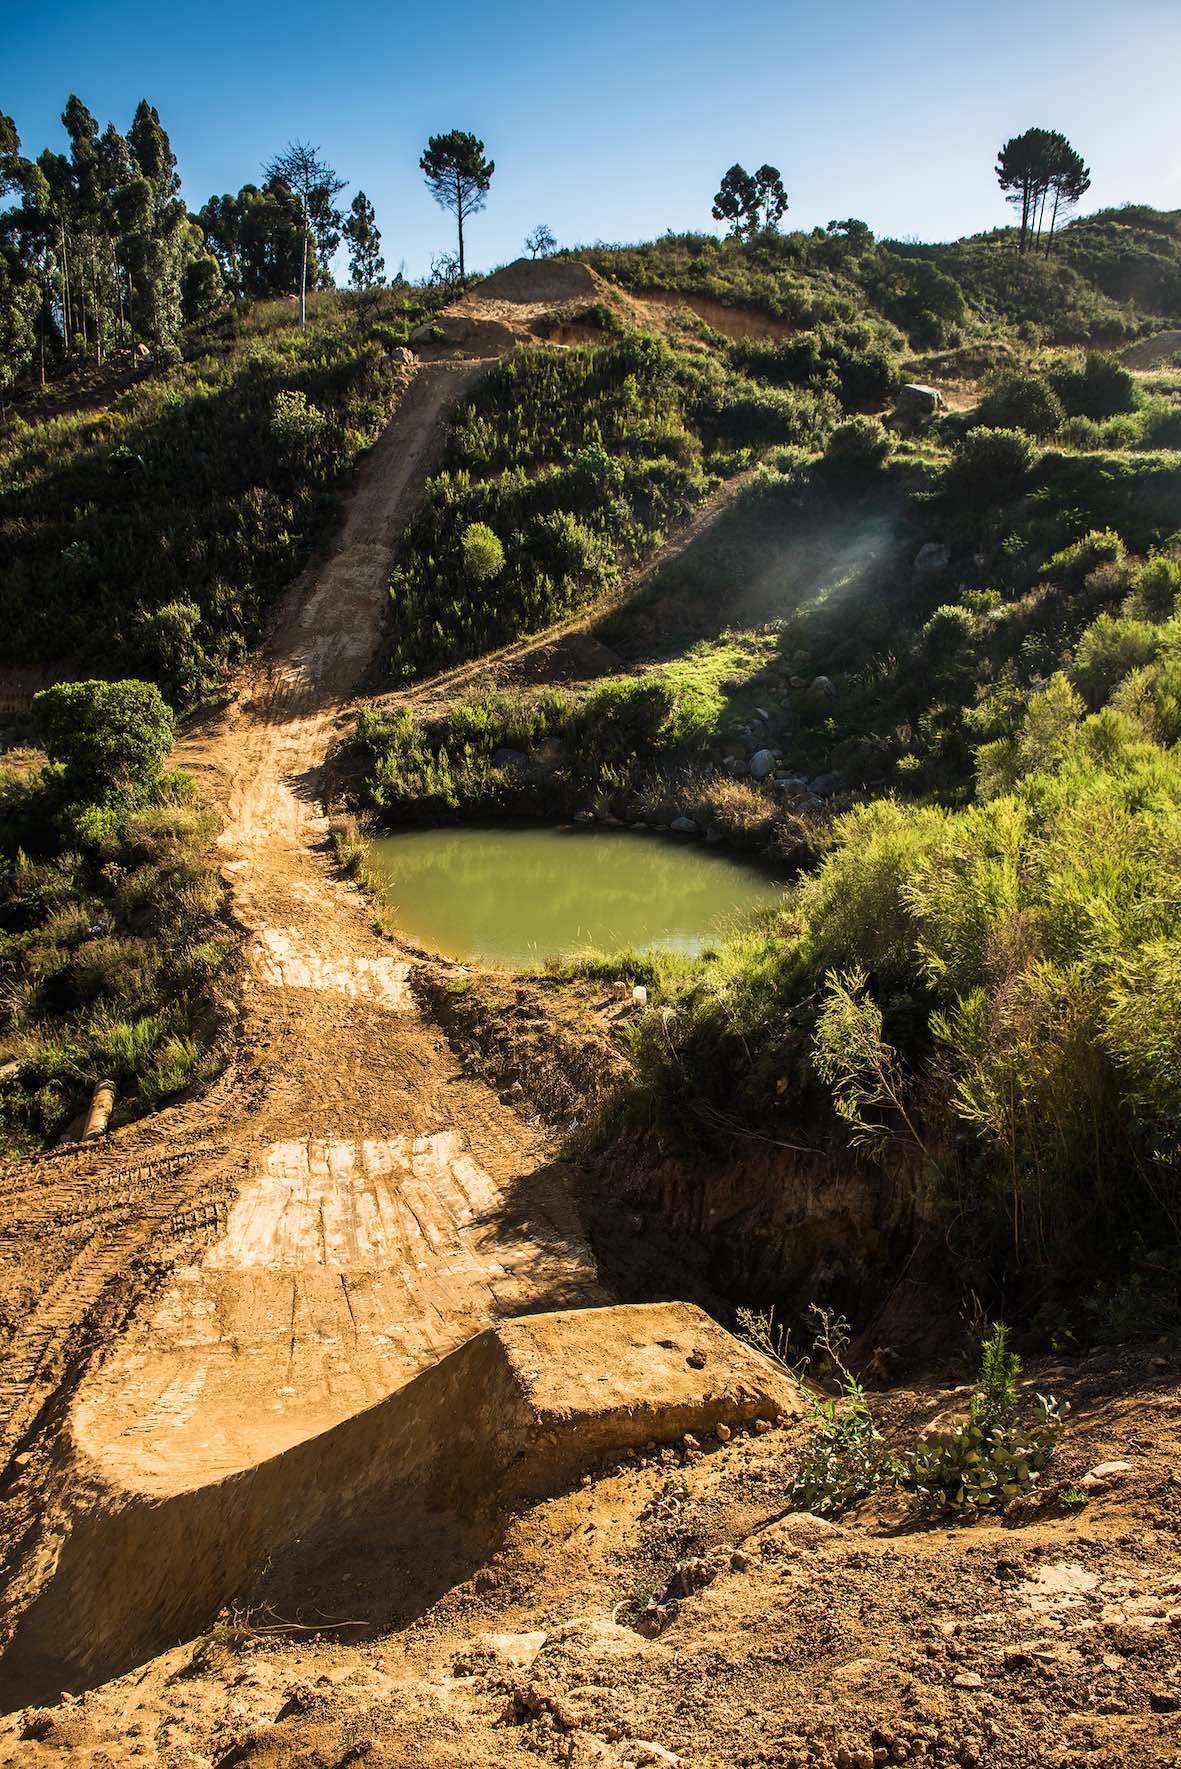 Darkfest 2019 Freeride MTB event is coming to Cape Town